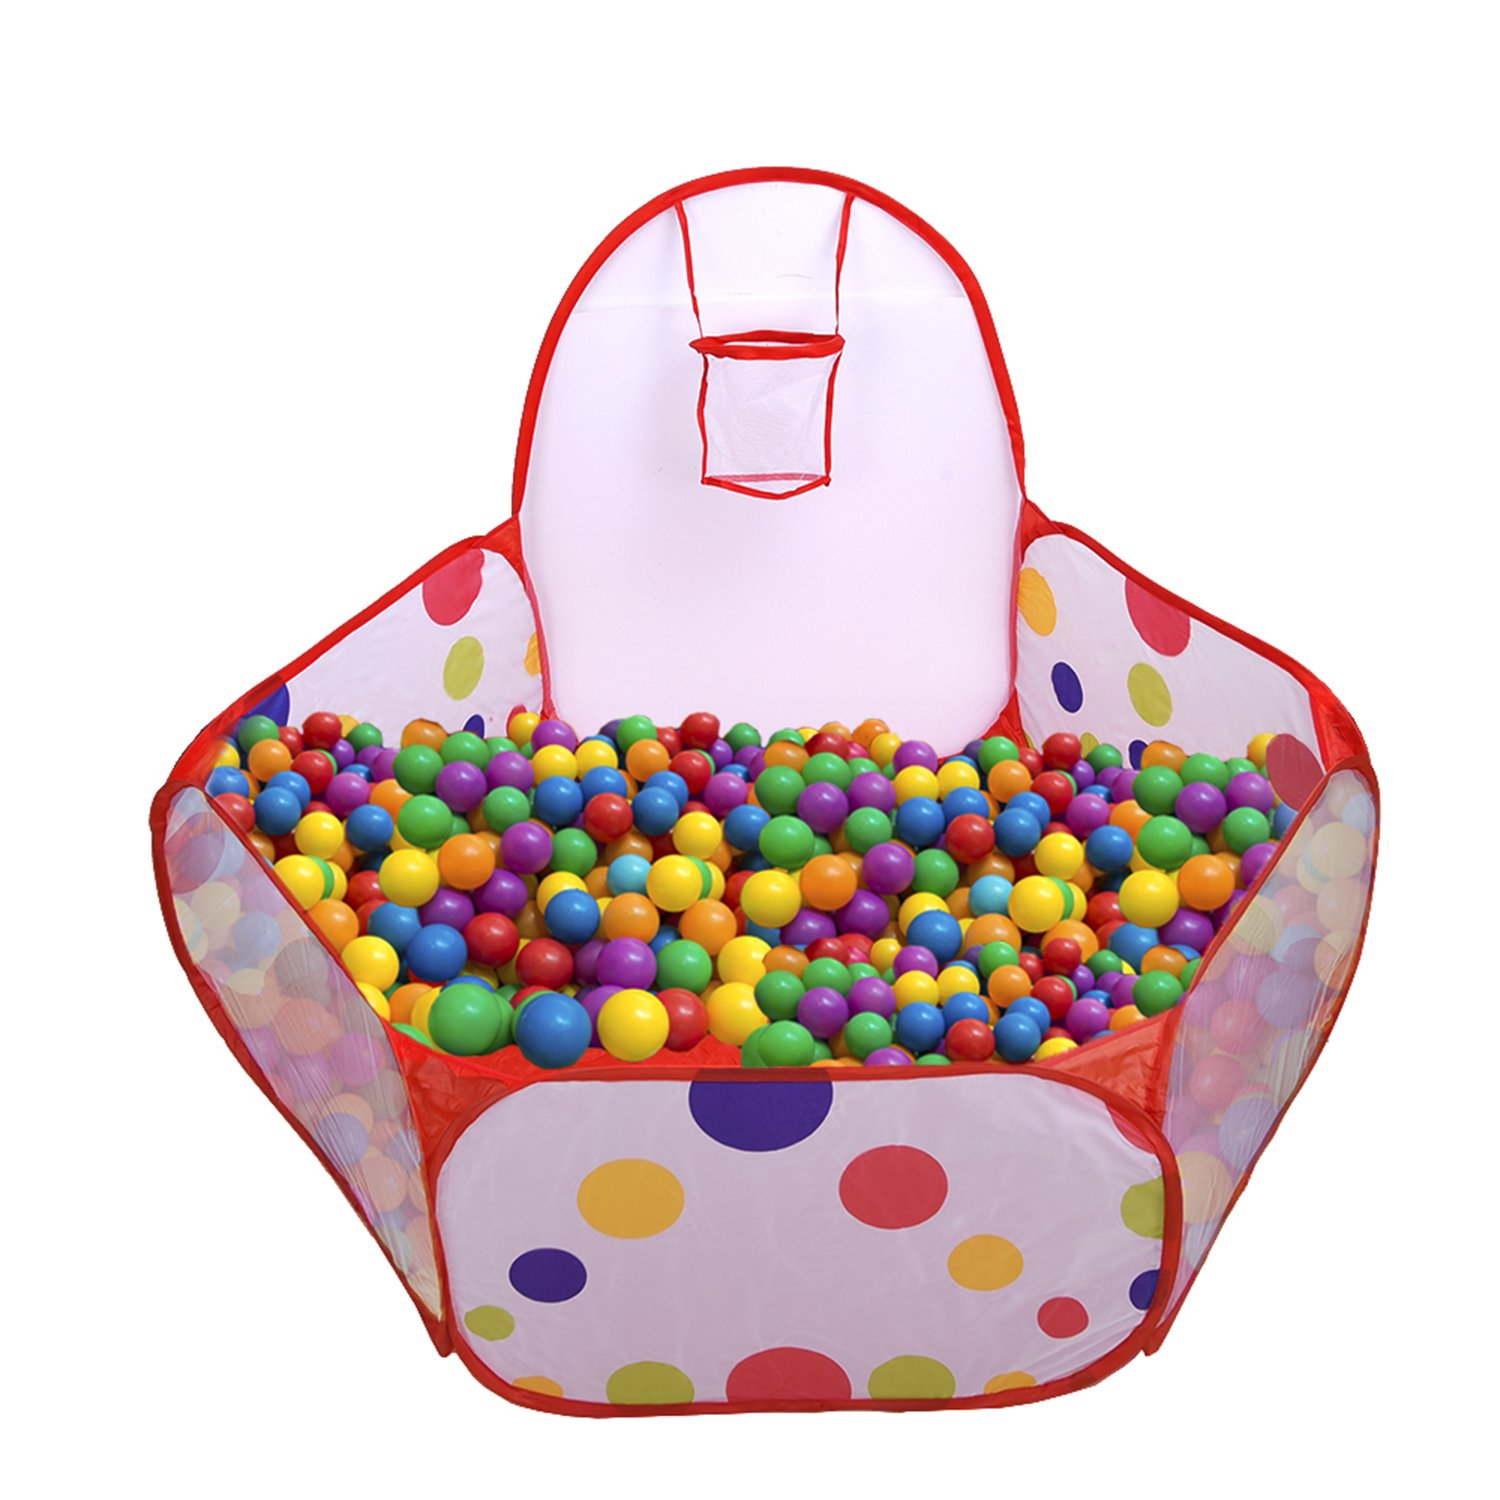 Mudder Kids Ball Pit Playpen Toddler Play Tent Sea Ball Pool with Mini Basketball Hoop and Zipper Storage Bag, 4 Feet/ 120 cm, Balls Not Included